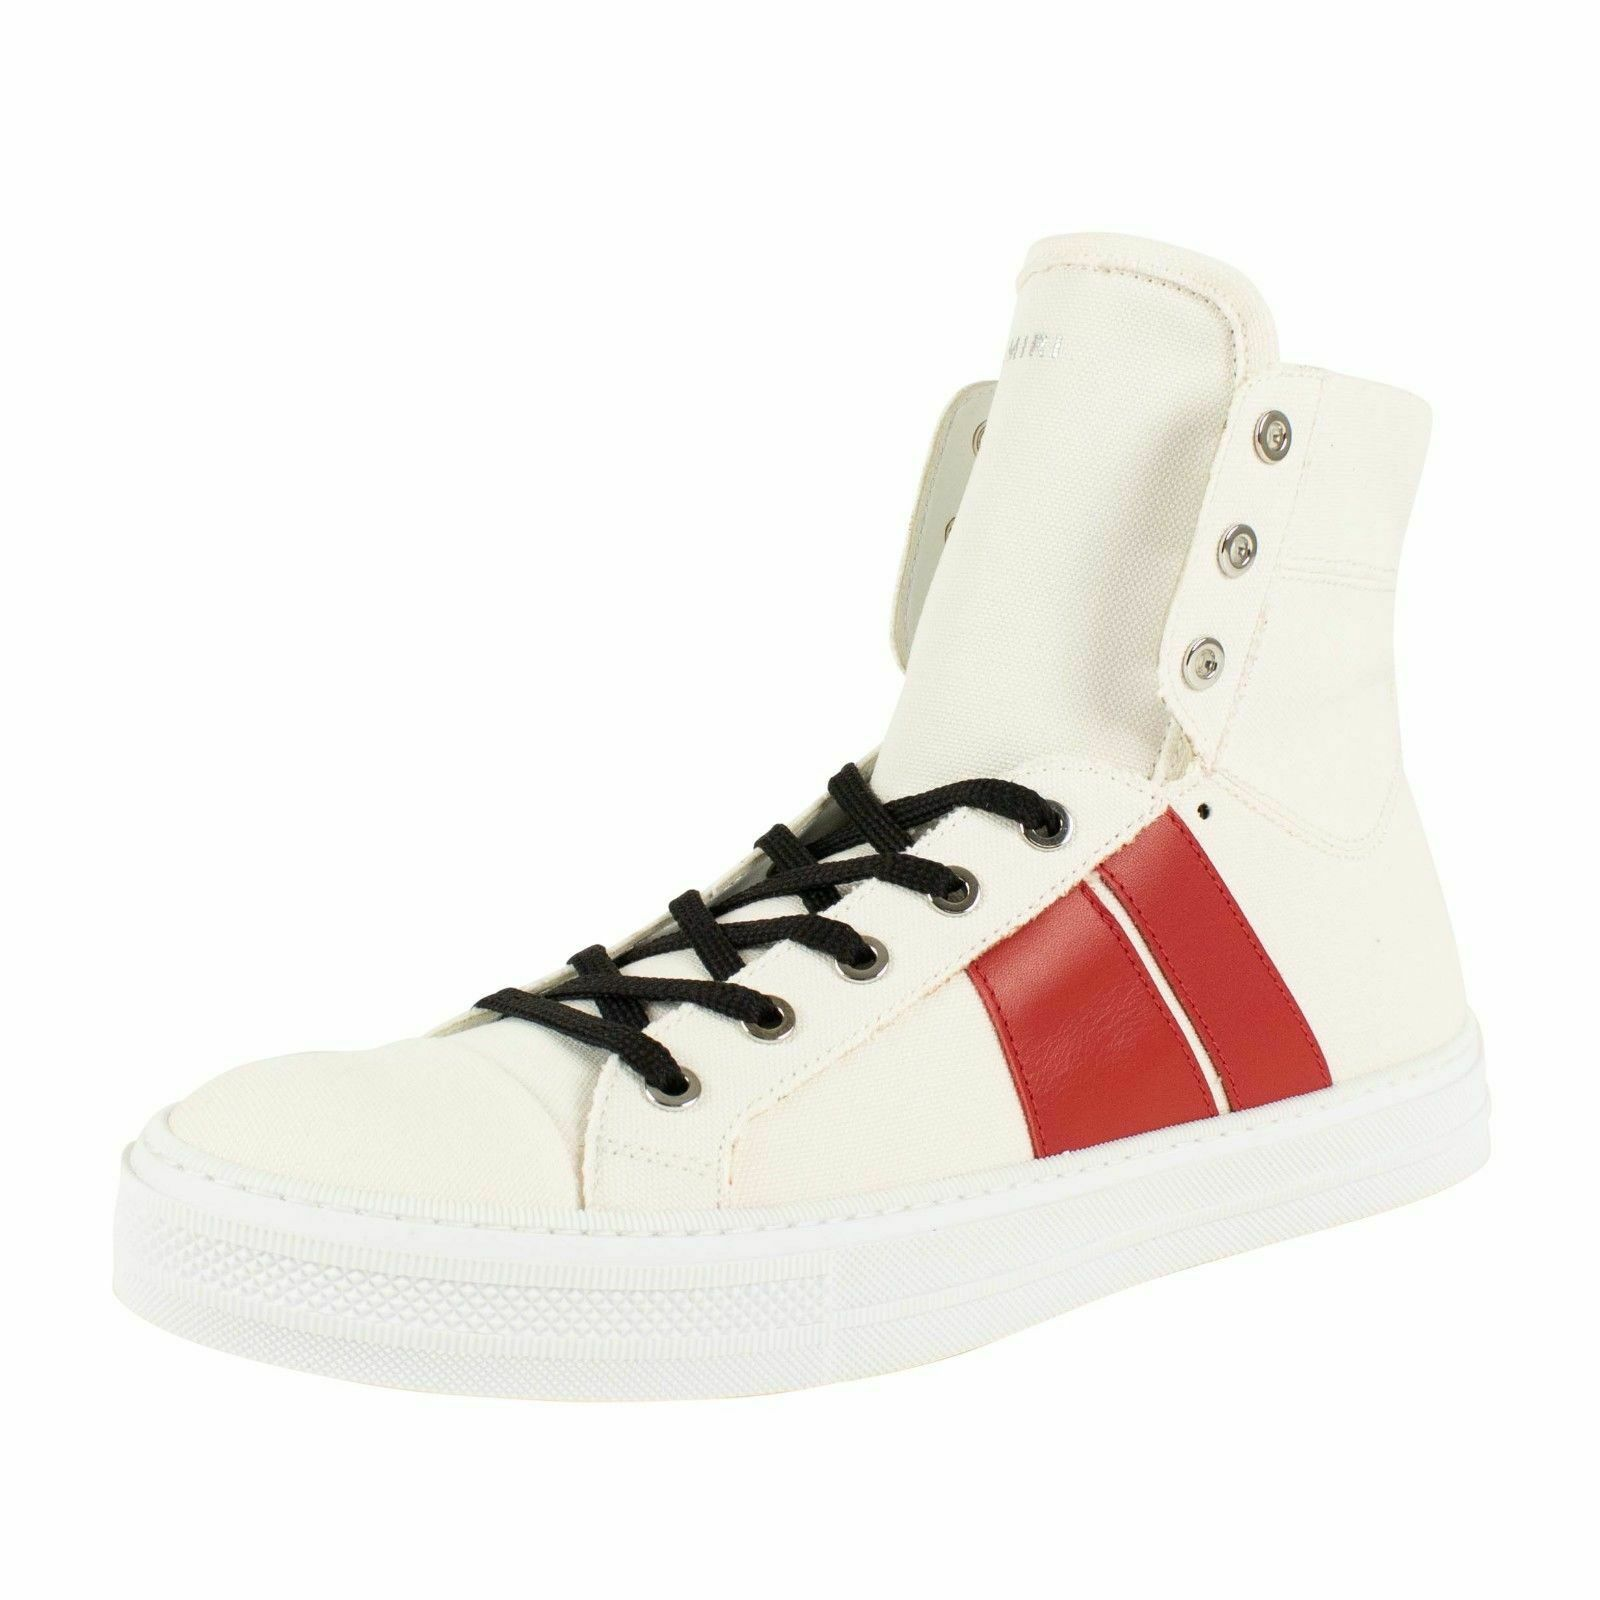 NIB AMIRI 'Sunset' White Red Canvas Sneakers shoes Size 13 US 46 EU  550